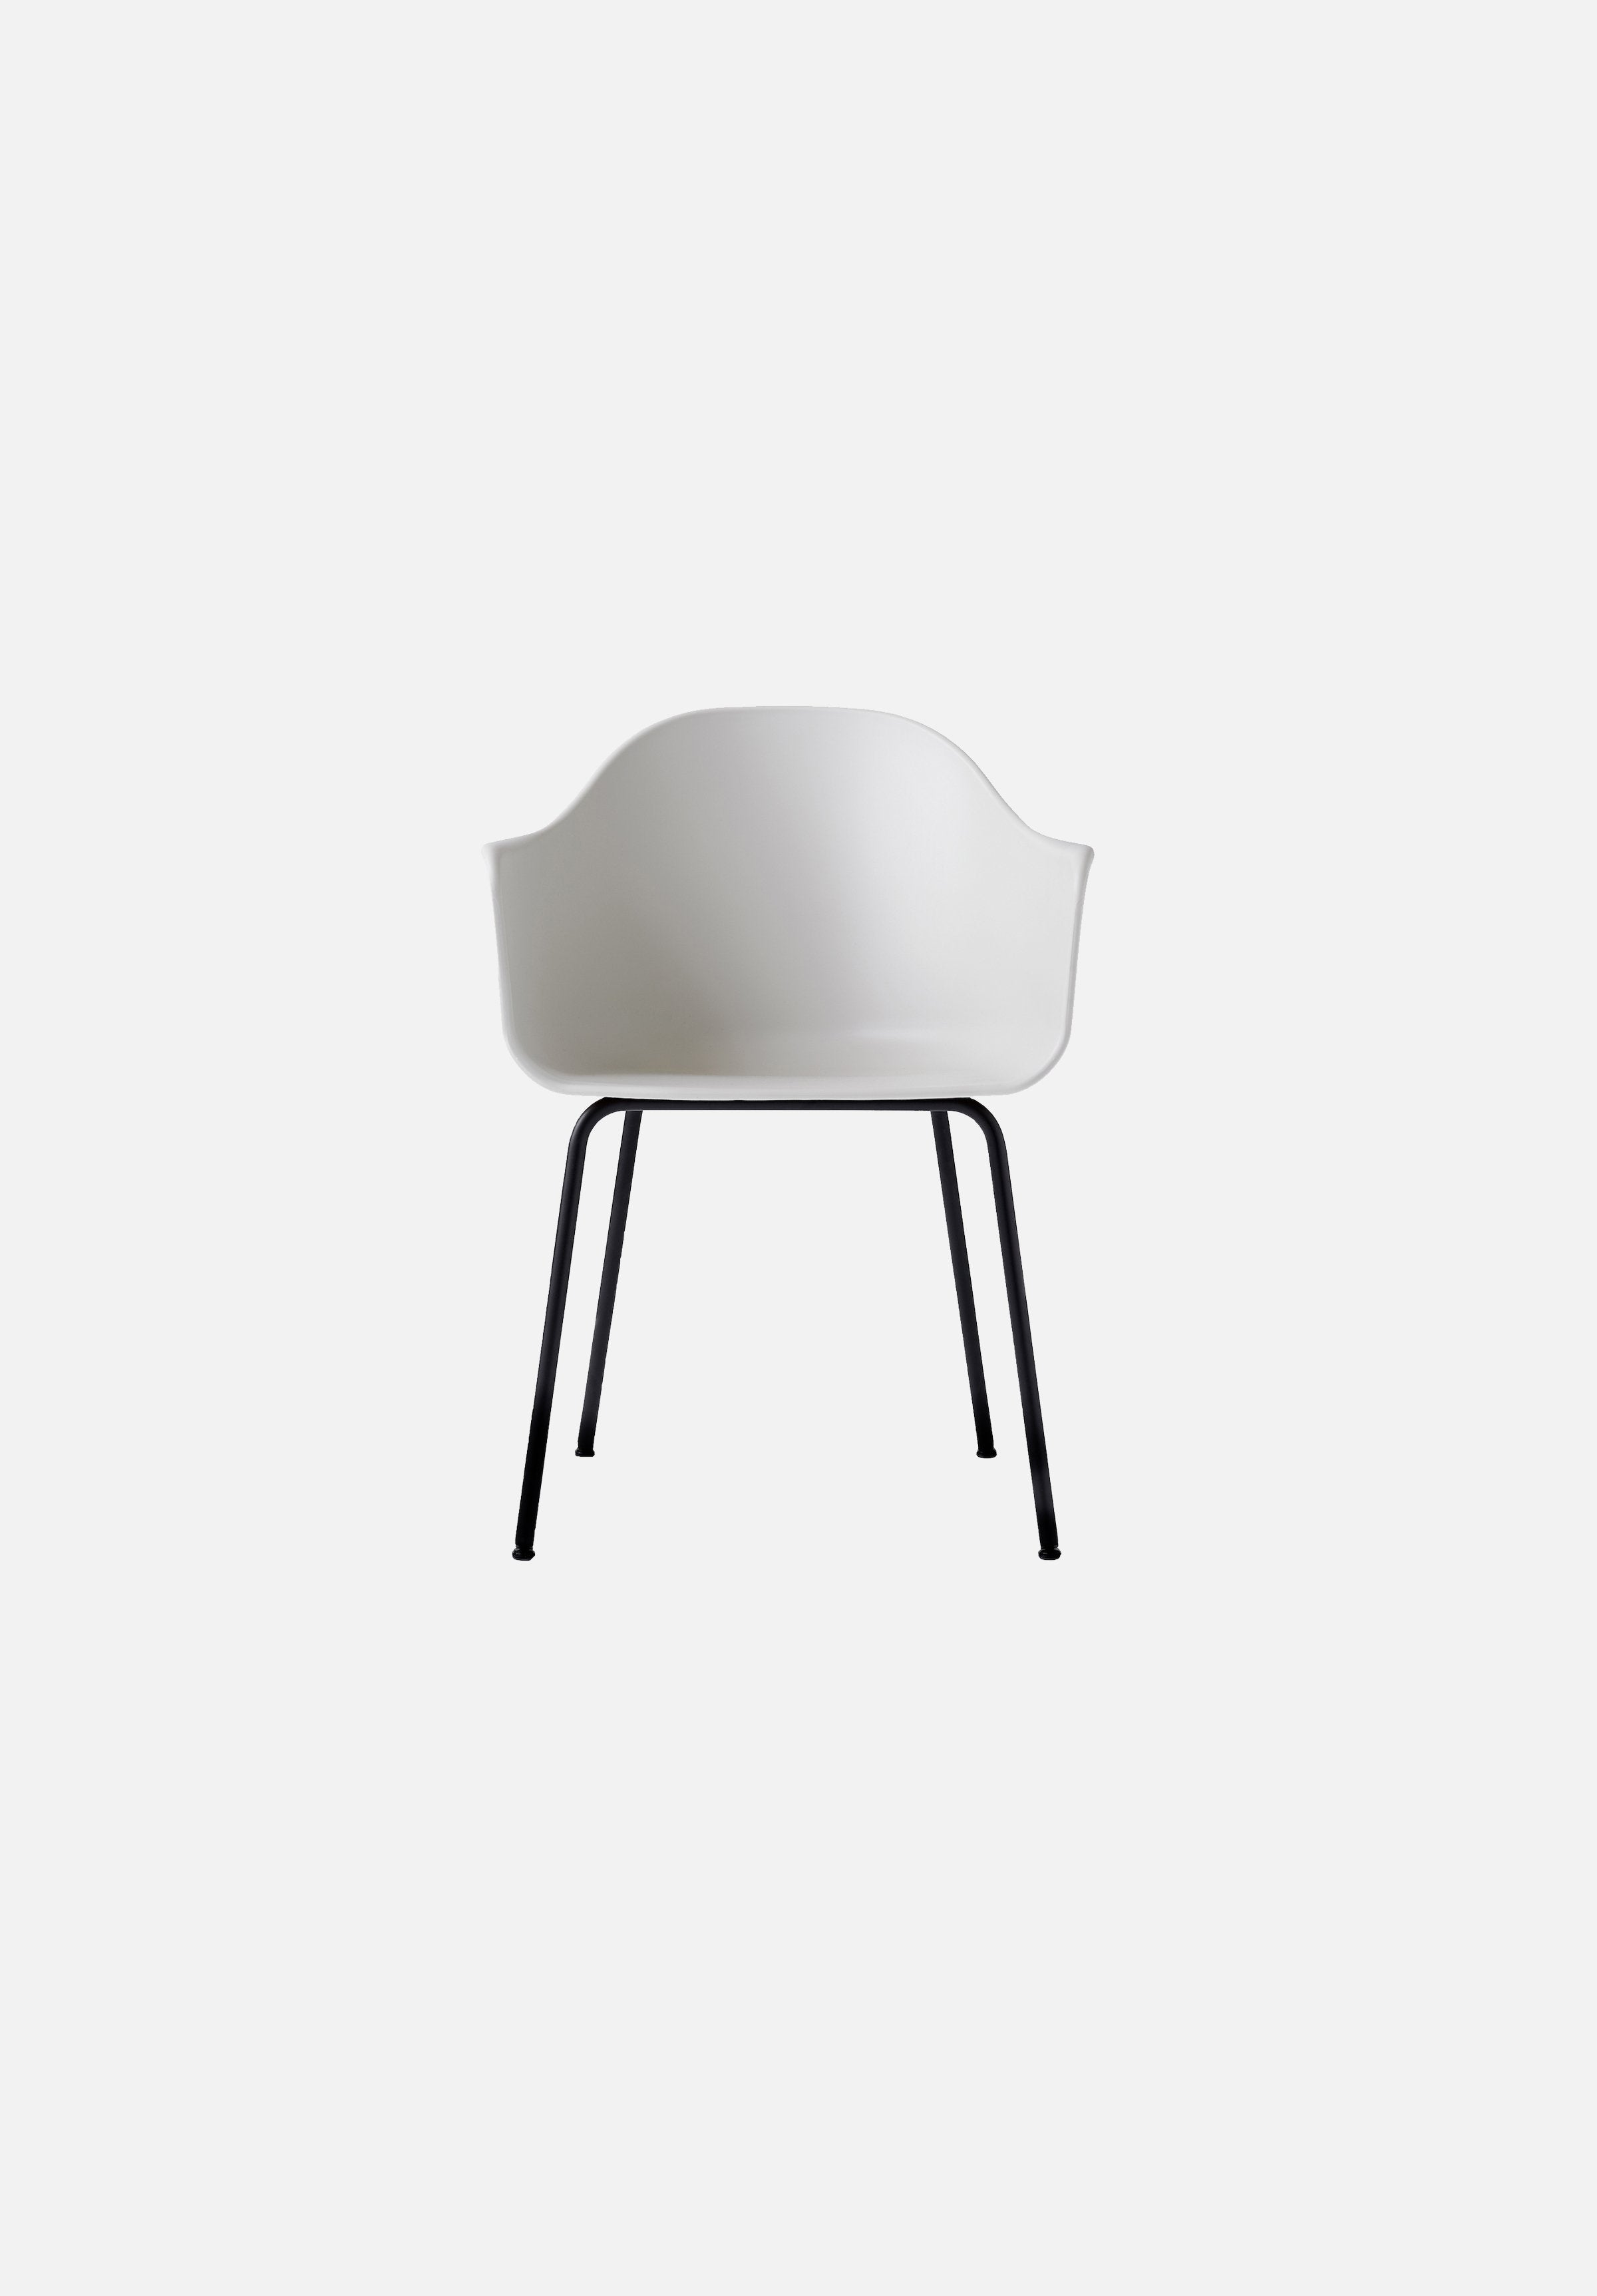 Harbour Chair - Steel Base-Norm Architects-Menu-light_grey-Black Steel-danish-interior-furniture-denmark-Average-design-toronto-canada